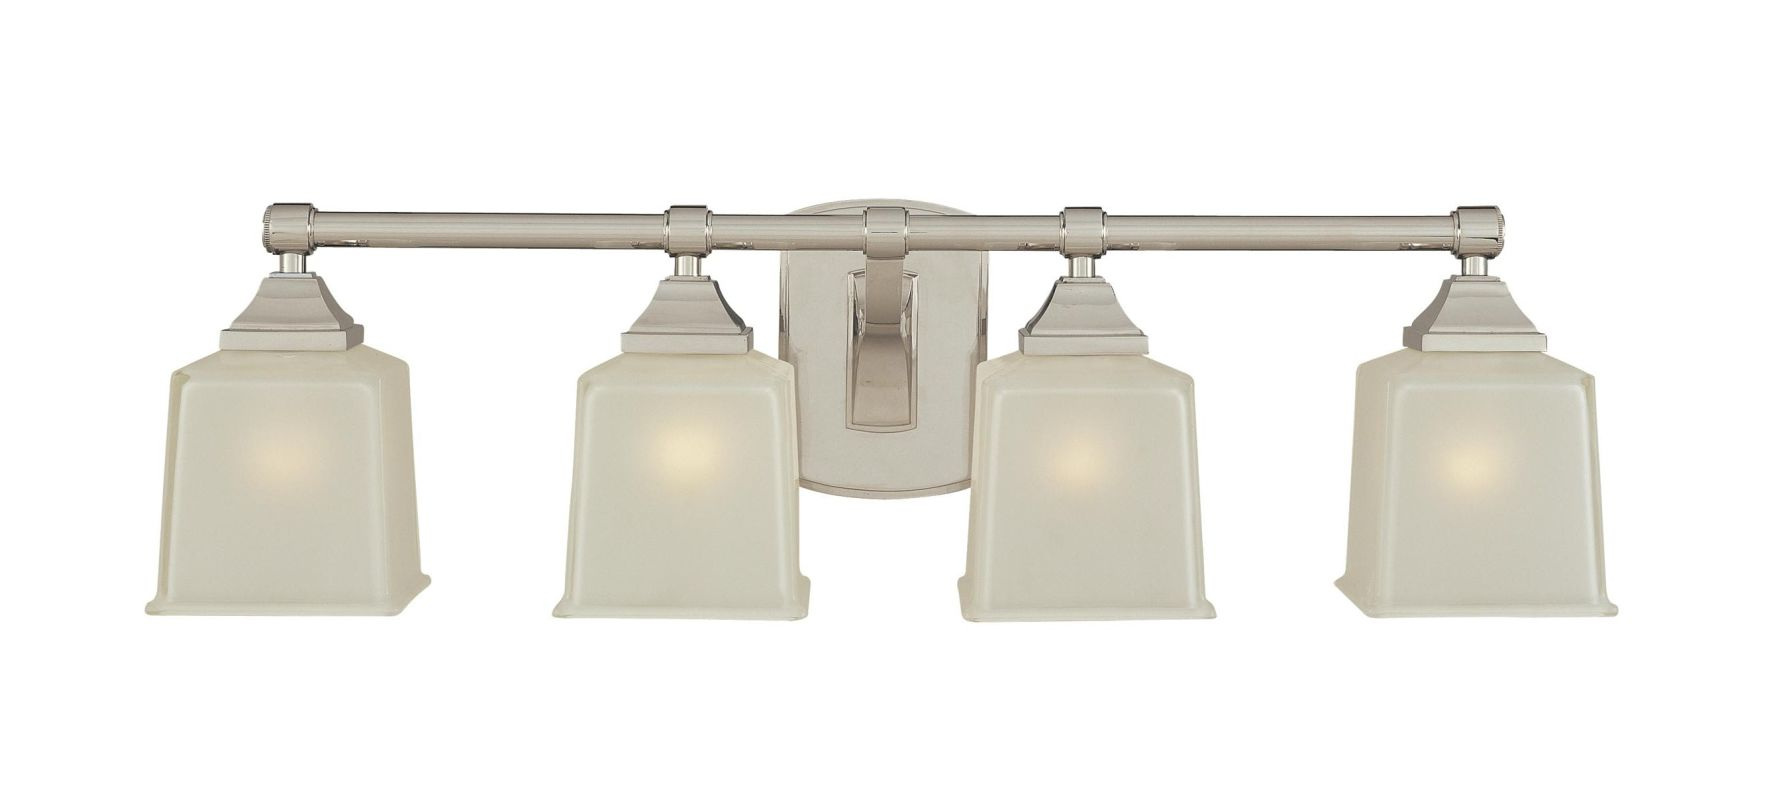 Hudson Valley Lighting 2244 Four Light Wall Sconce from the Lakeland